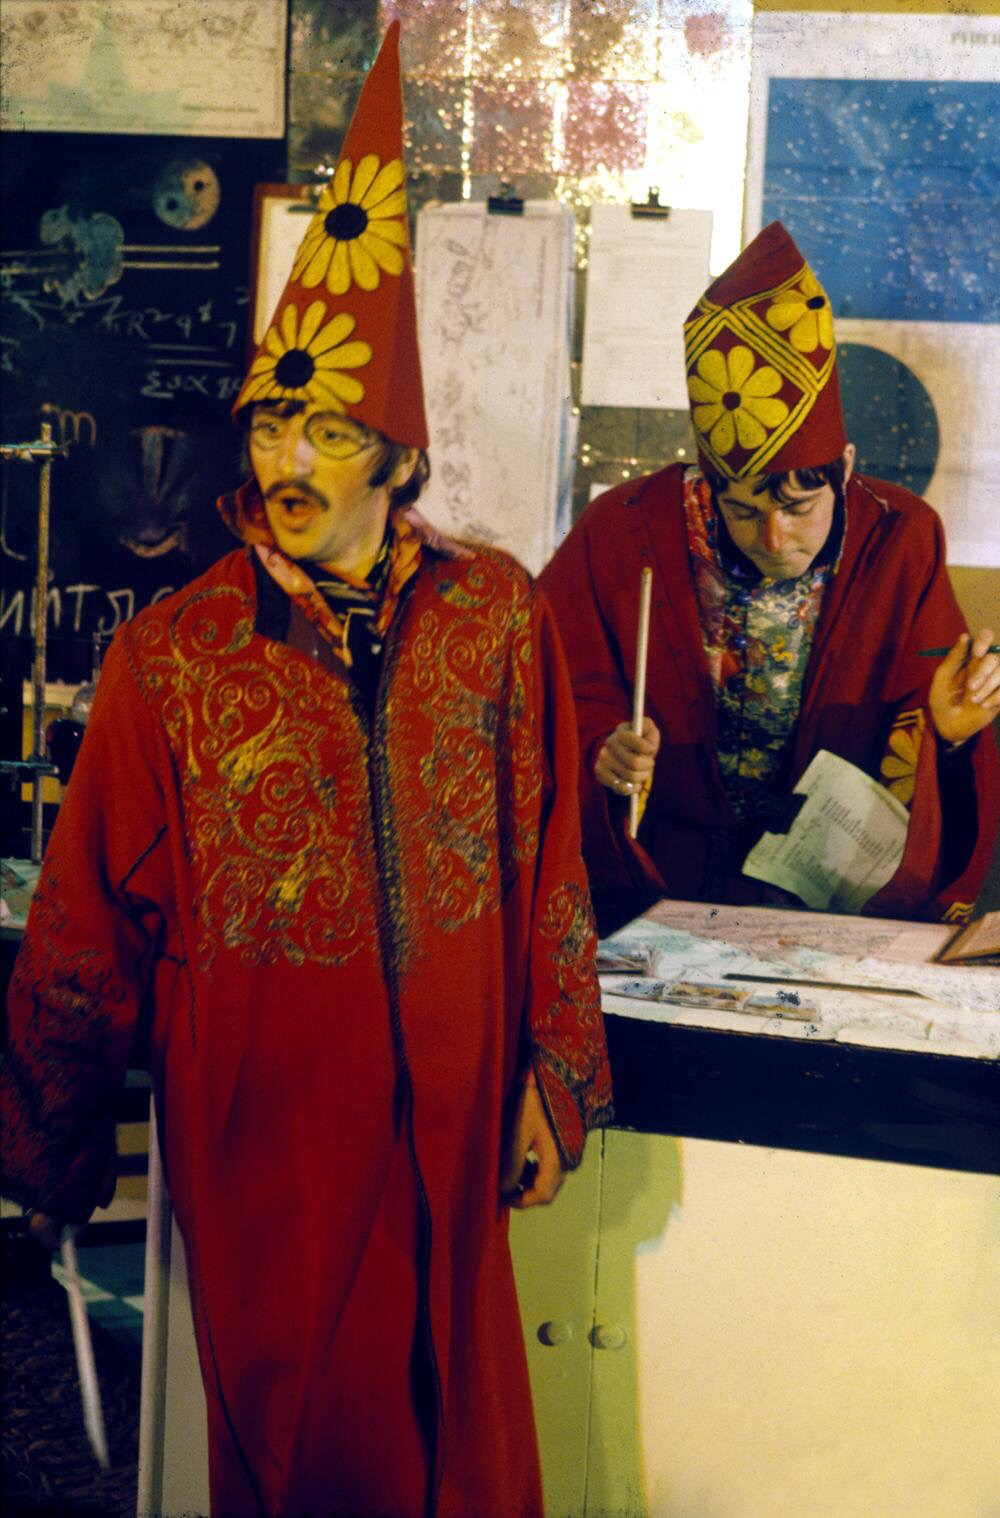 Paul and Ringo as wizards in Magical Mystery Tour, 1967.